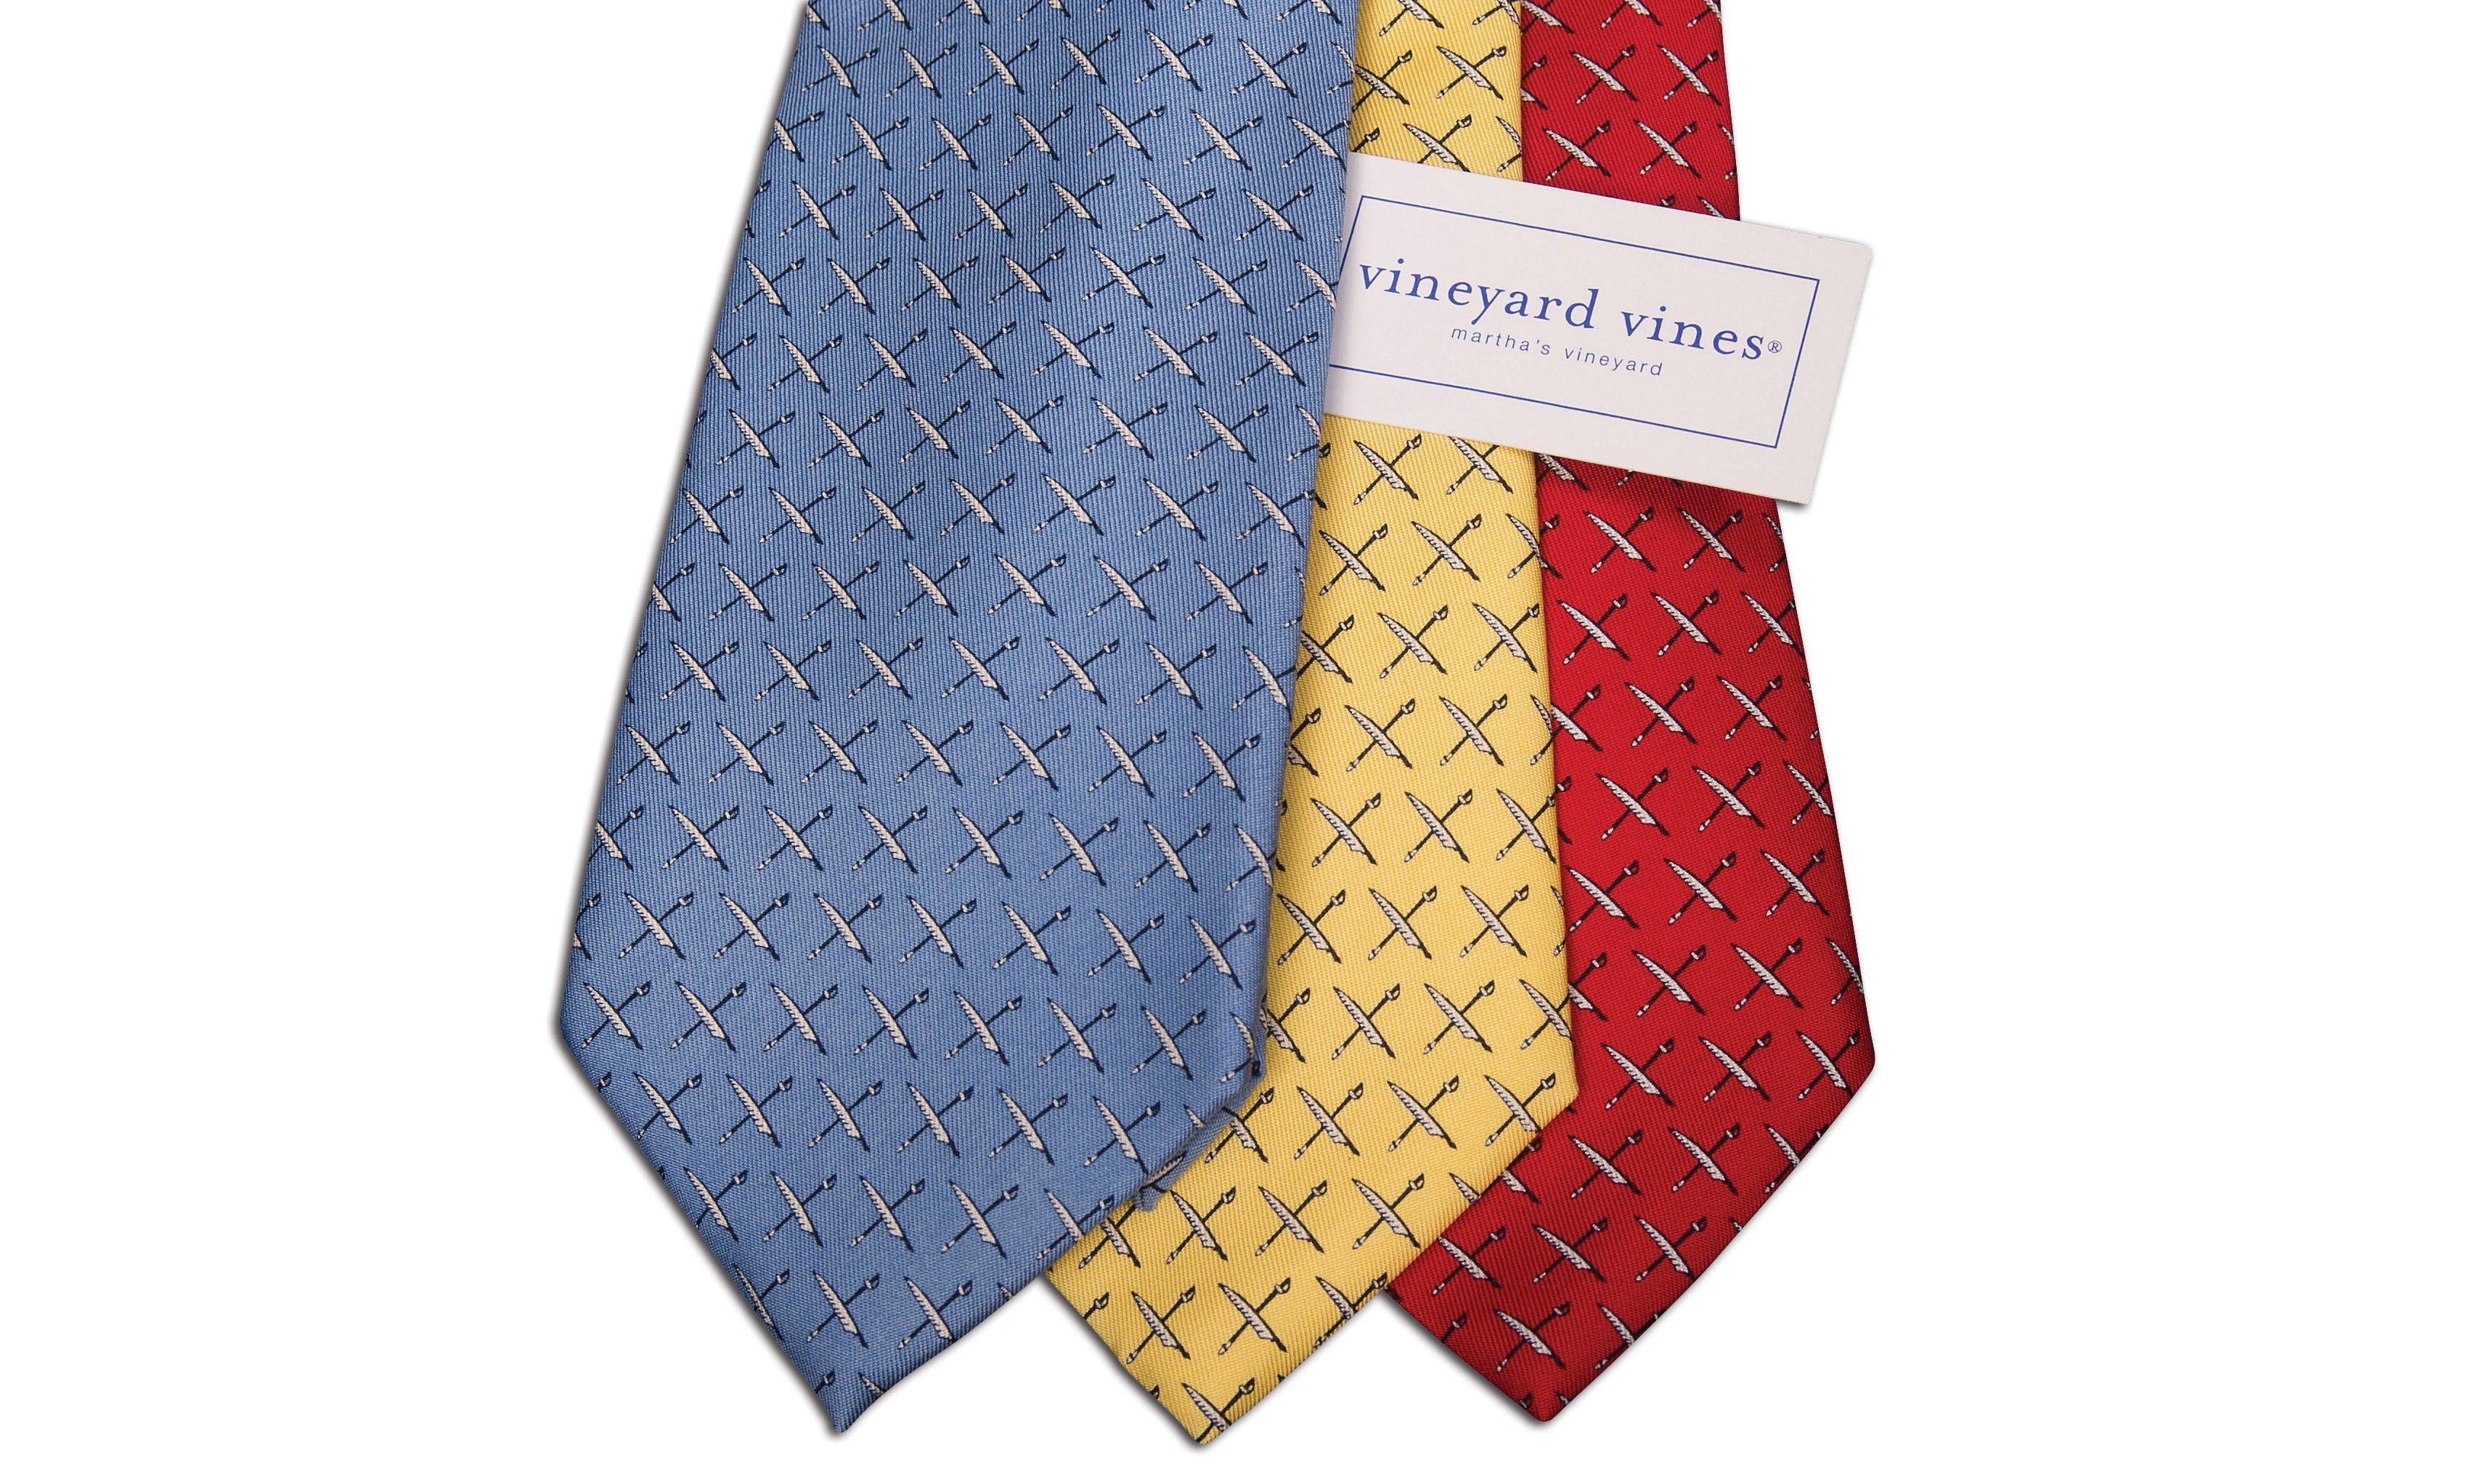 Blue, Yellow, and Red Naval Institute Vineyard Vines Ties with label